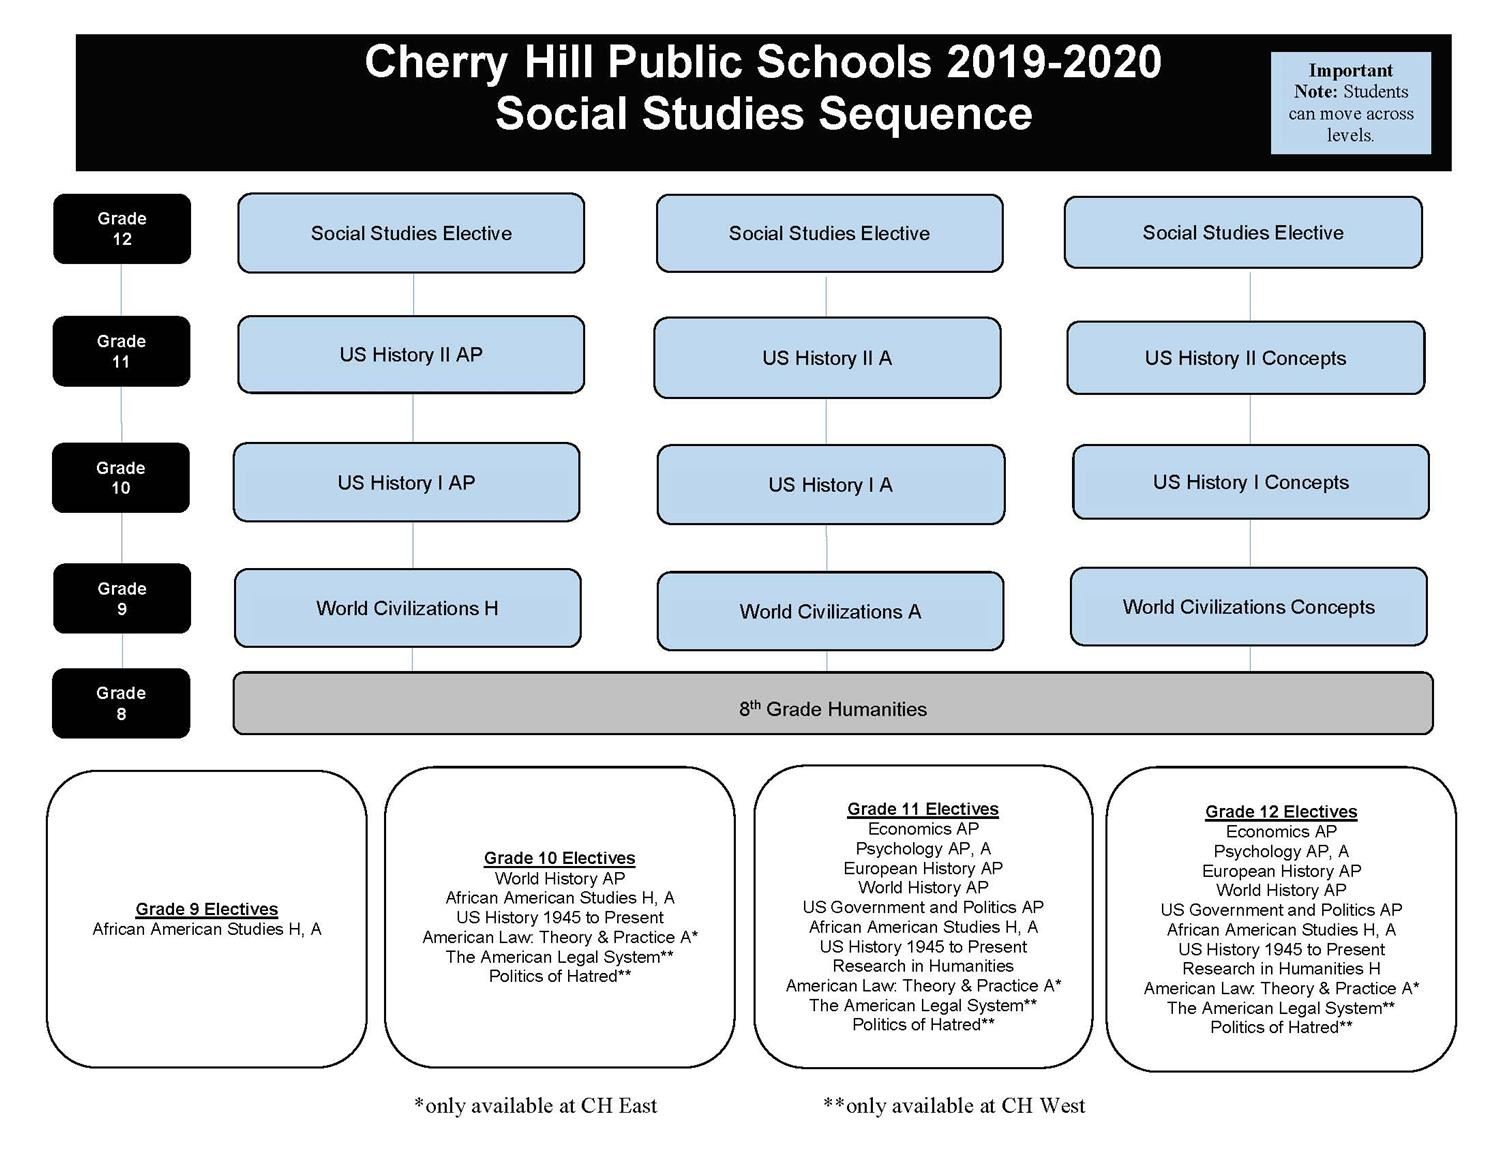 Cherry Hill Public Schools 2019-2020 Social Studies Sequence   Important Note: Students can move across levels.  Grade 12 inc